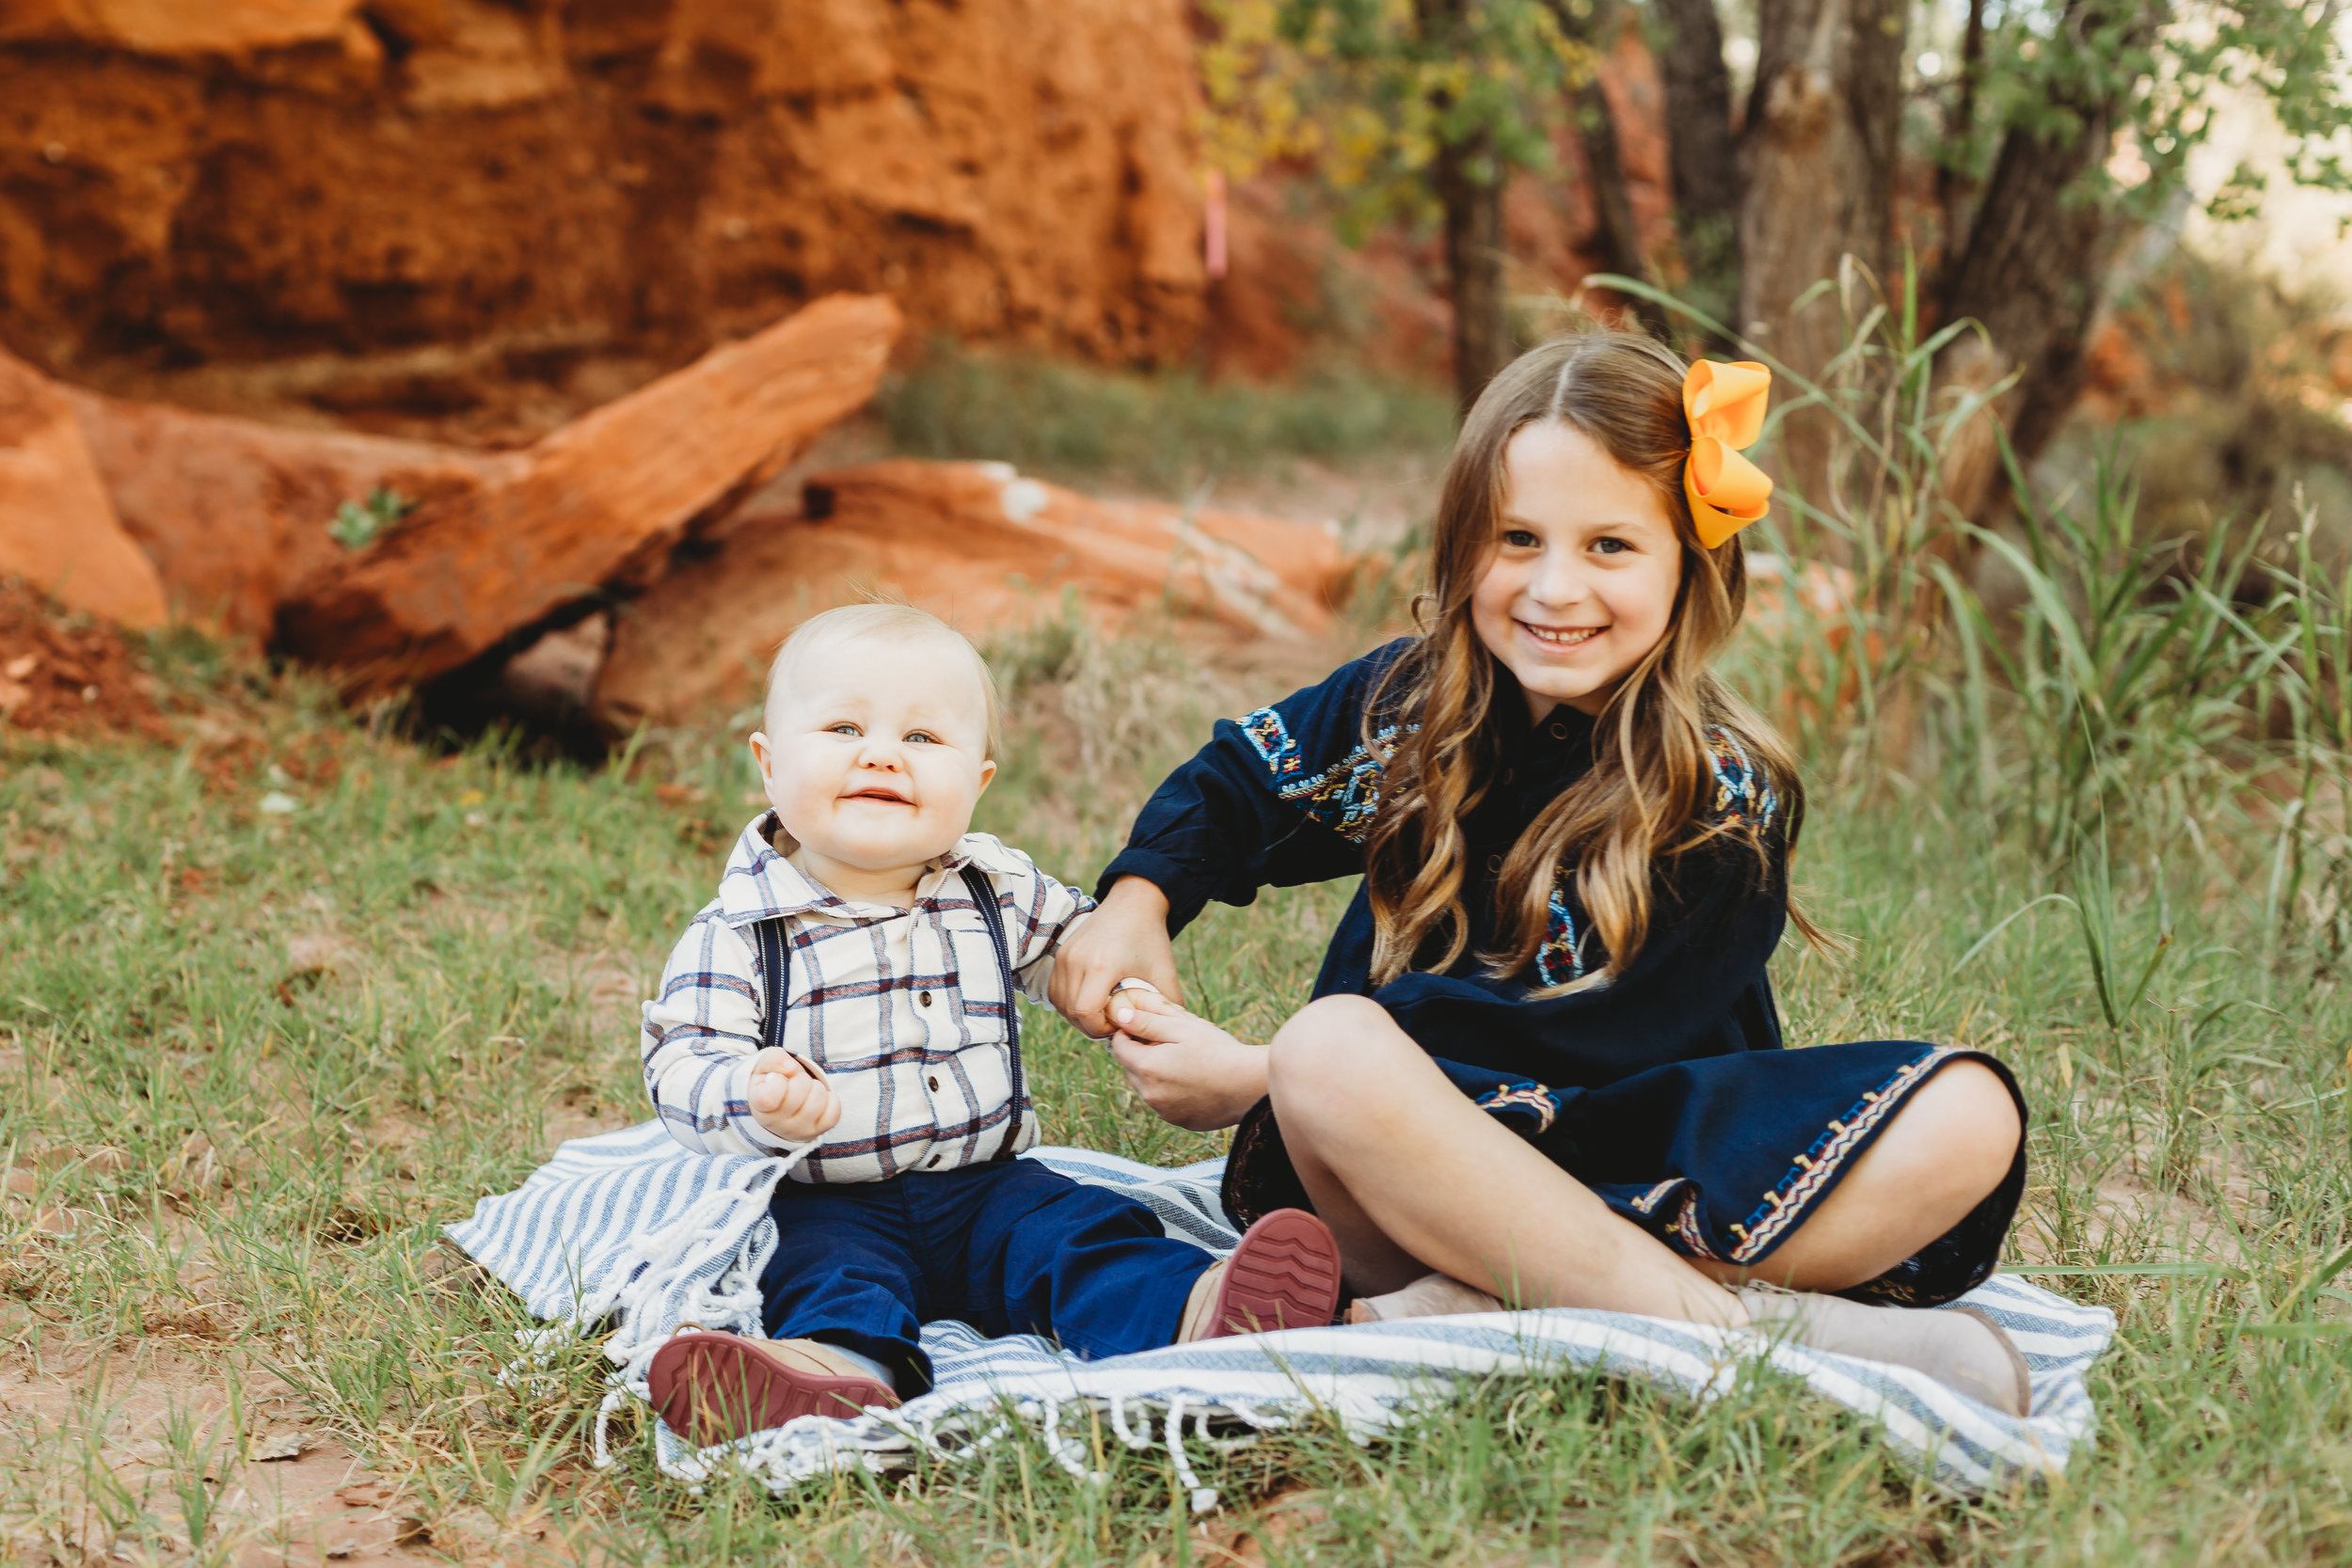 Brother and sister sitting on picnic blanket with greenery and red rock behind them smiling at the camera #tealawardphotography #texasfamilyphotographer #amarillophotographer #amarillofamilyphotographer #lifestylephotography #emotionalphotography #familyphotosoot #family #lovingsiblings #purejoy #familyphotos #familyphotographer #greatoutdoors